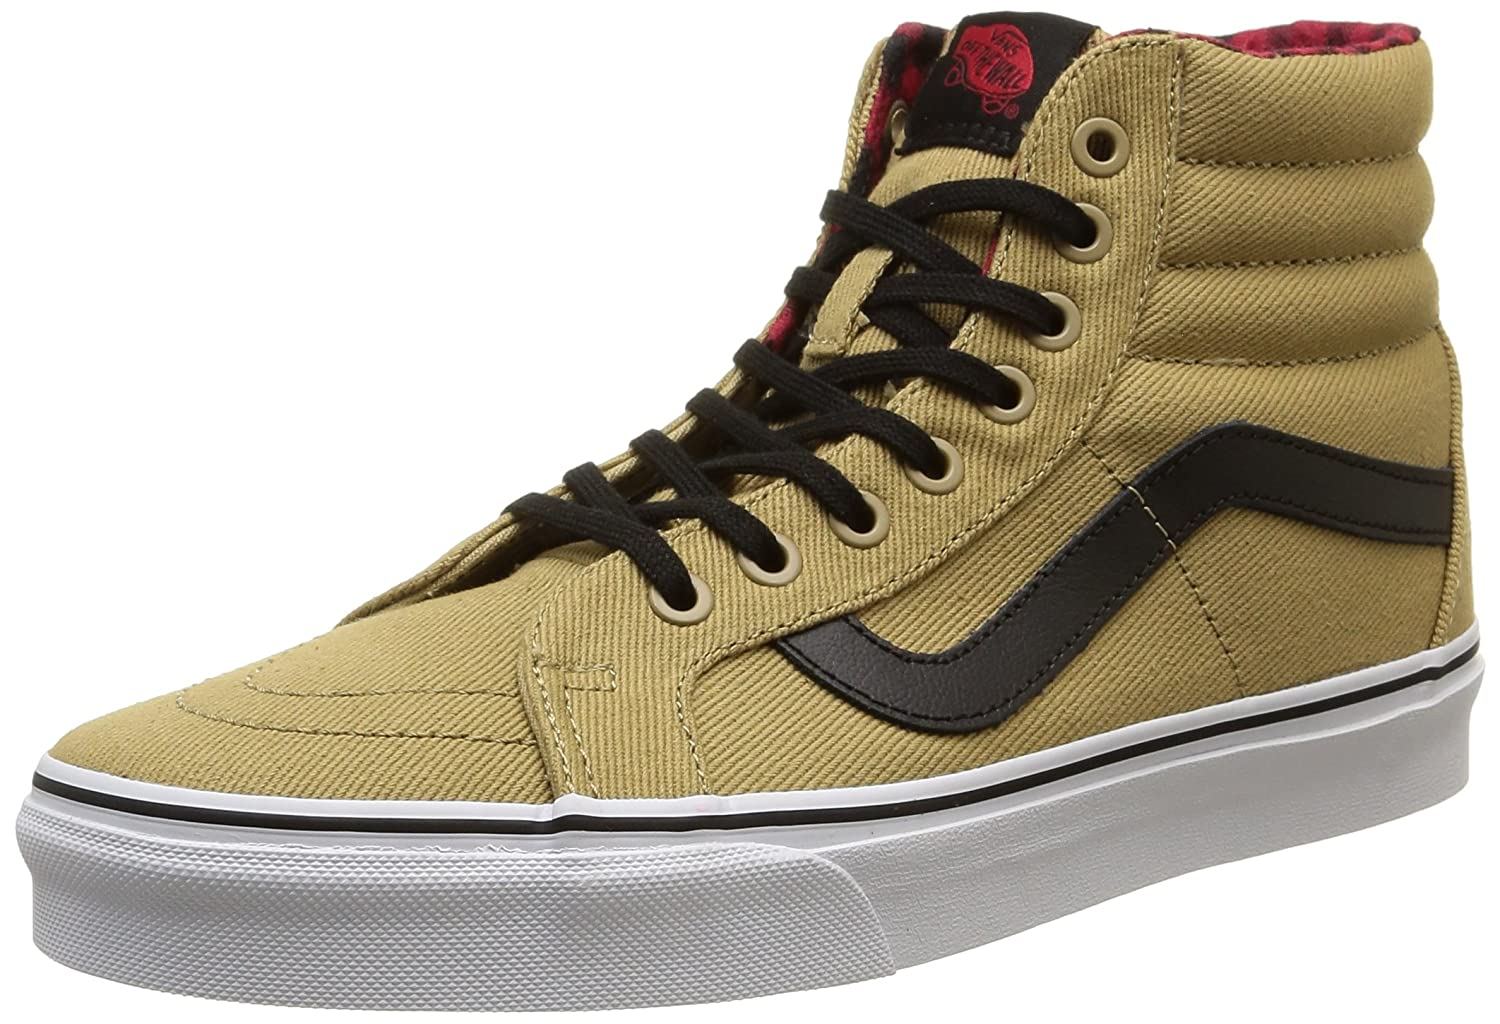 Vans Sk8-Hi Unisex Casual High-Top Skate Shoes, Comfortable and Durable in Signature Waffle Rubber Sole B011JJRPXU 9.5 B(M) US|Cornstalk/Black